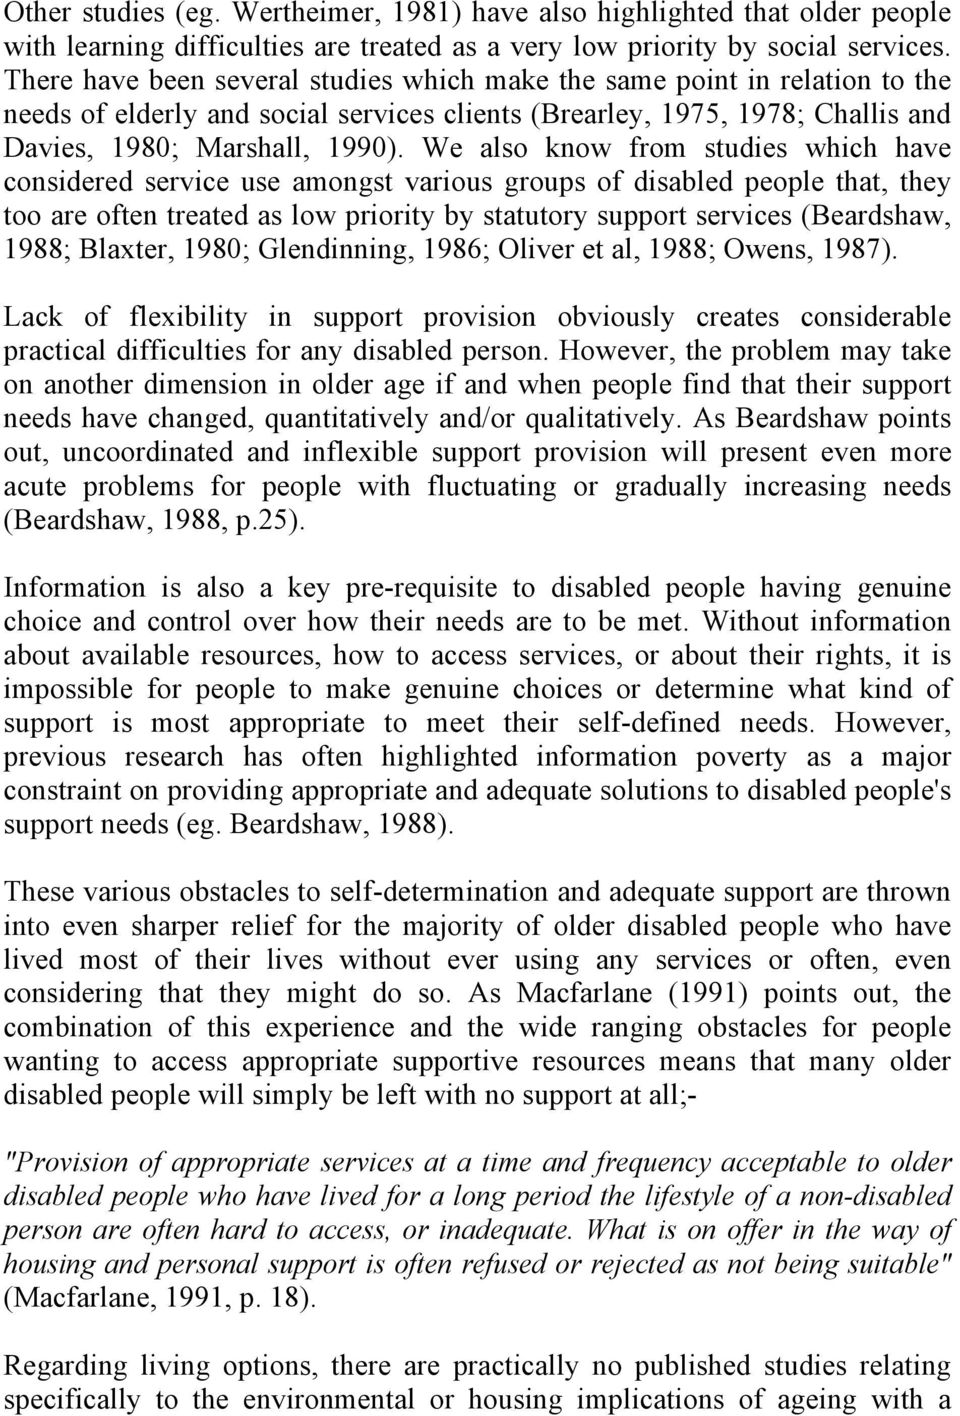 We also know from studies which have considered service use amongst various groups of disabled people that, they too are often treated as low priority by statutory support services (Beardshaw, 1988;